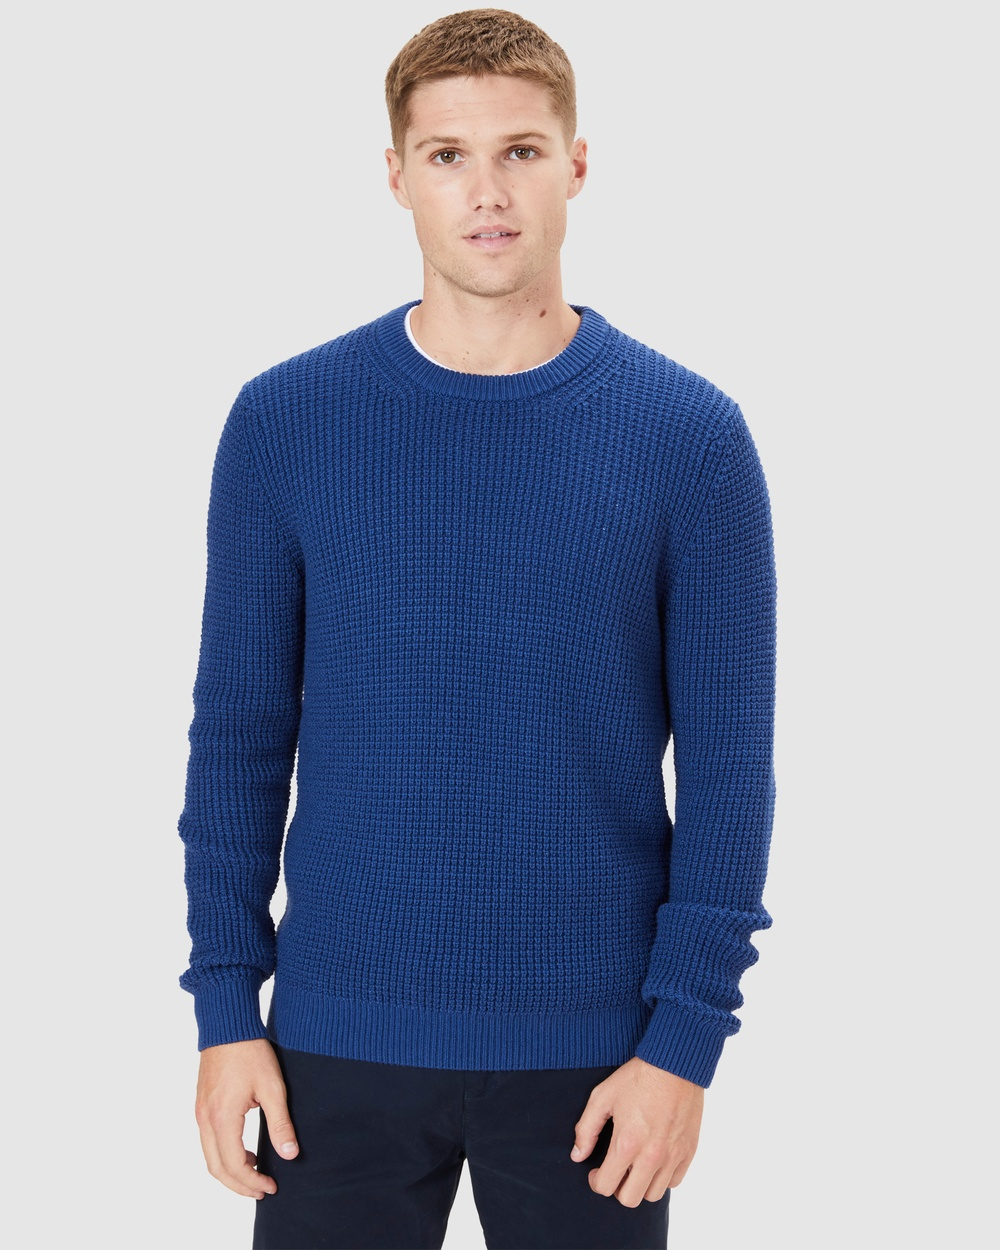 French Connection Chunky Waffle Knit Jumpers & Cardigans VINTAGE BLUE Australia